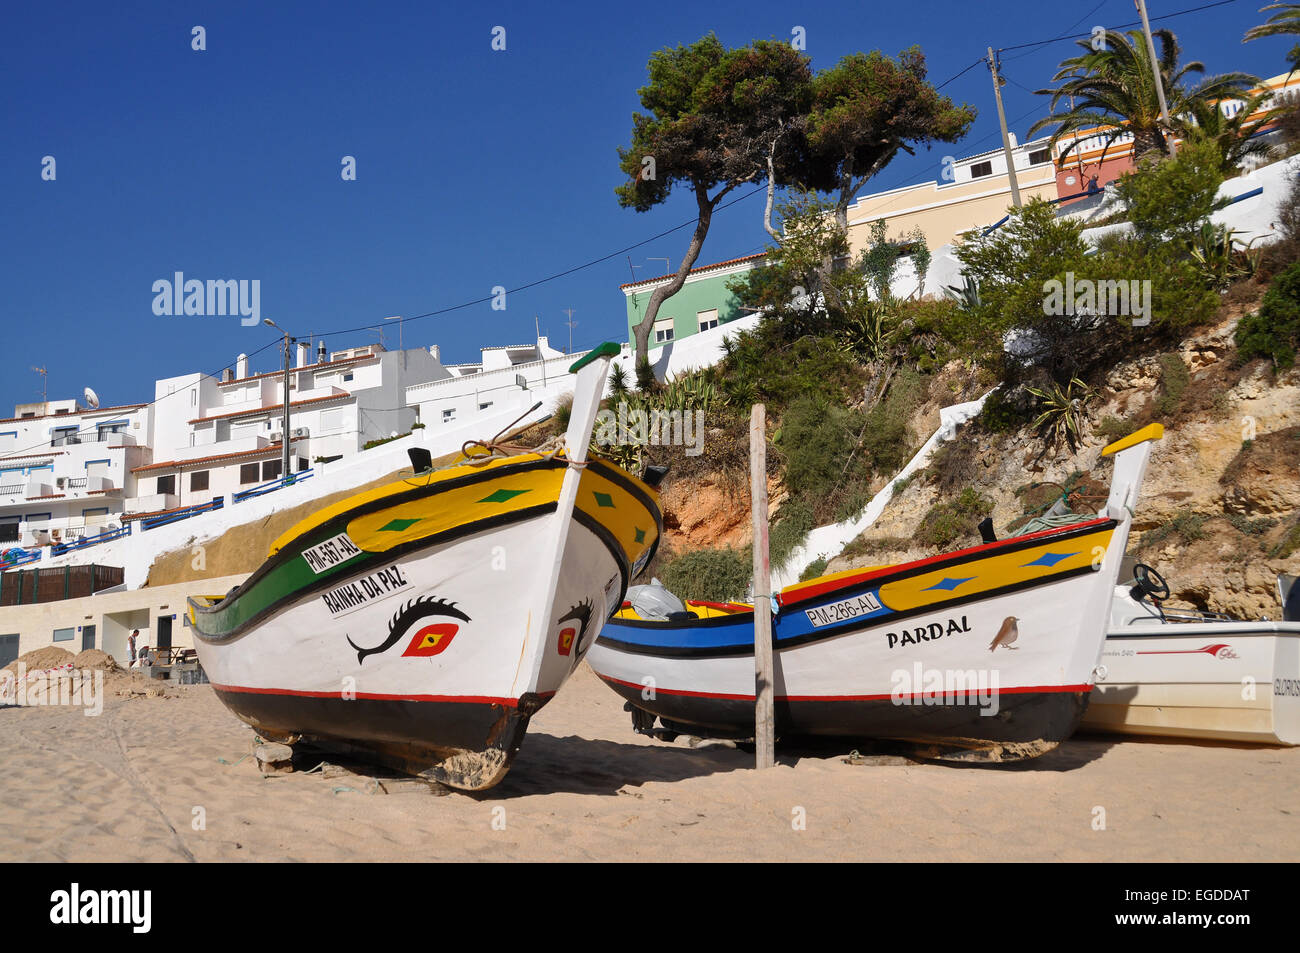 Traditional fishing boats on the beach of Carvoeiro, Algarve, Portugal Stock Photo